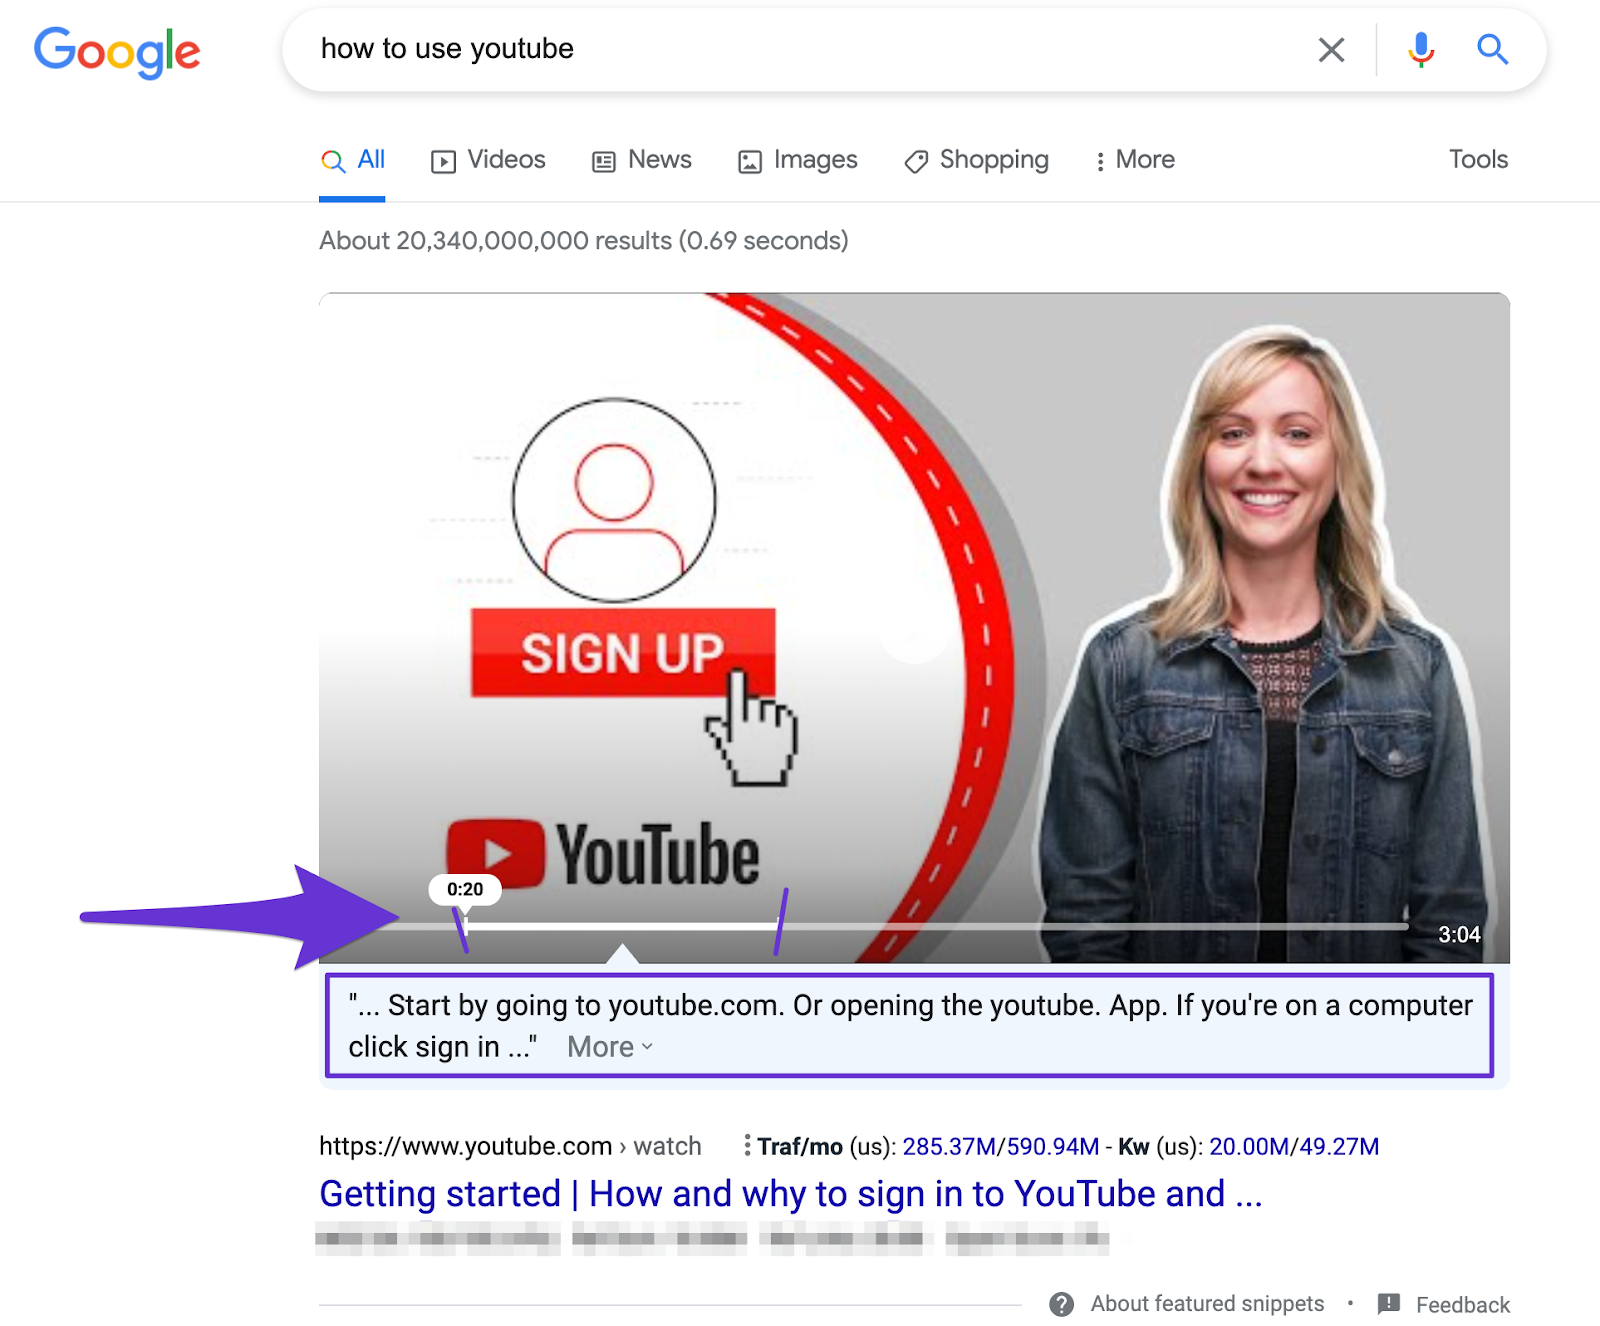 how to youtube video ranking for featured snippet with time stamp